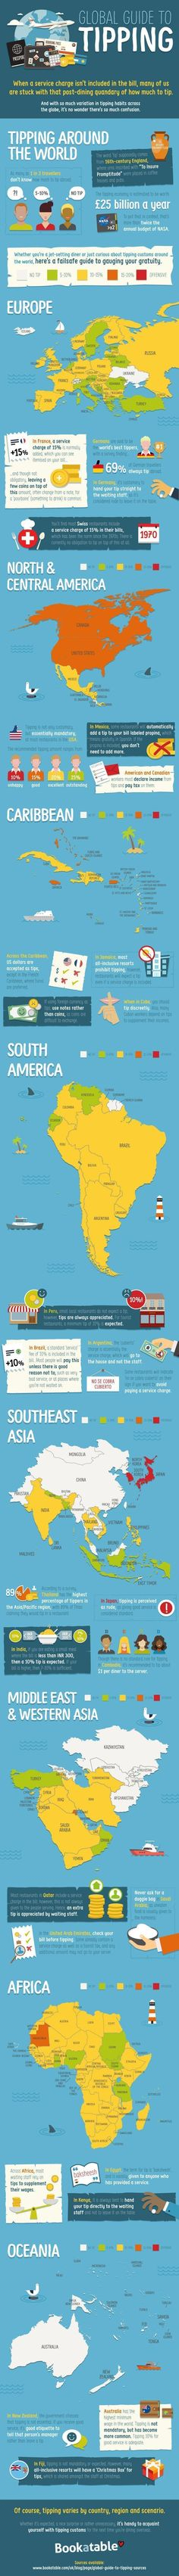 Global Guide To Tipping #infographic #Travel #Tipping #travelinfographic